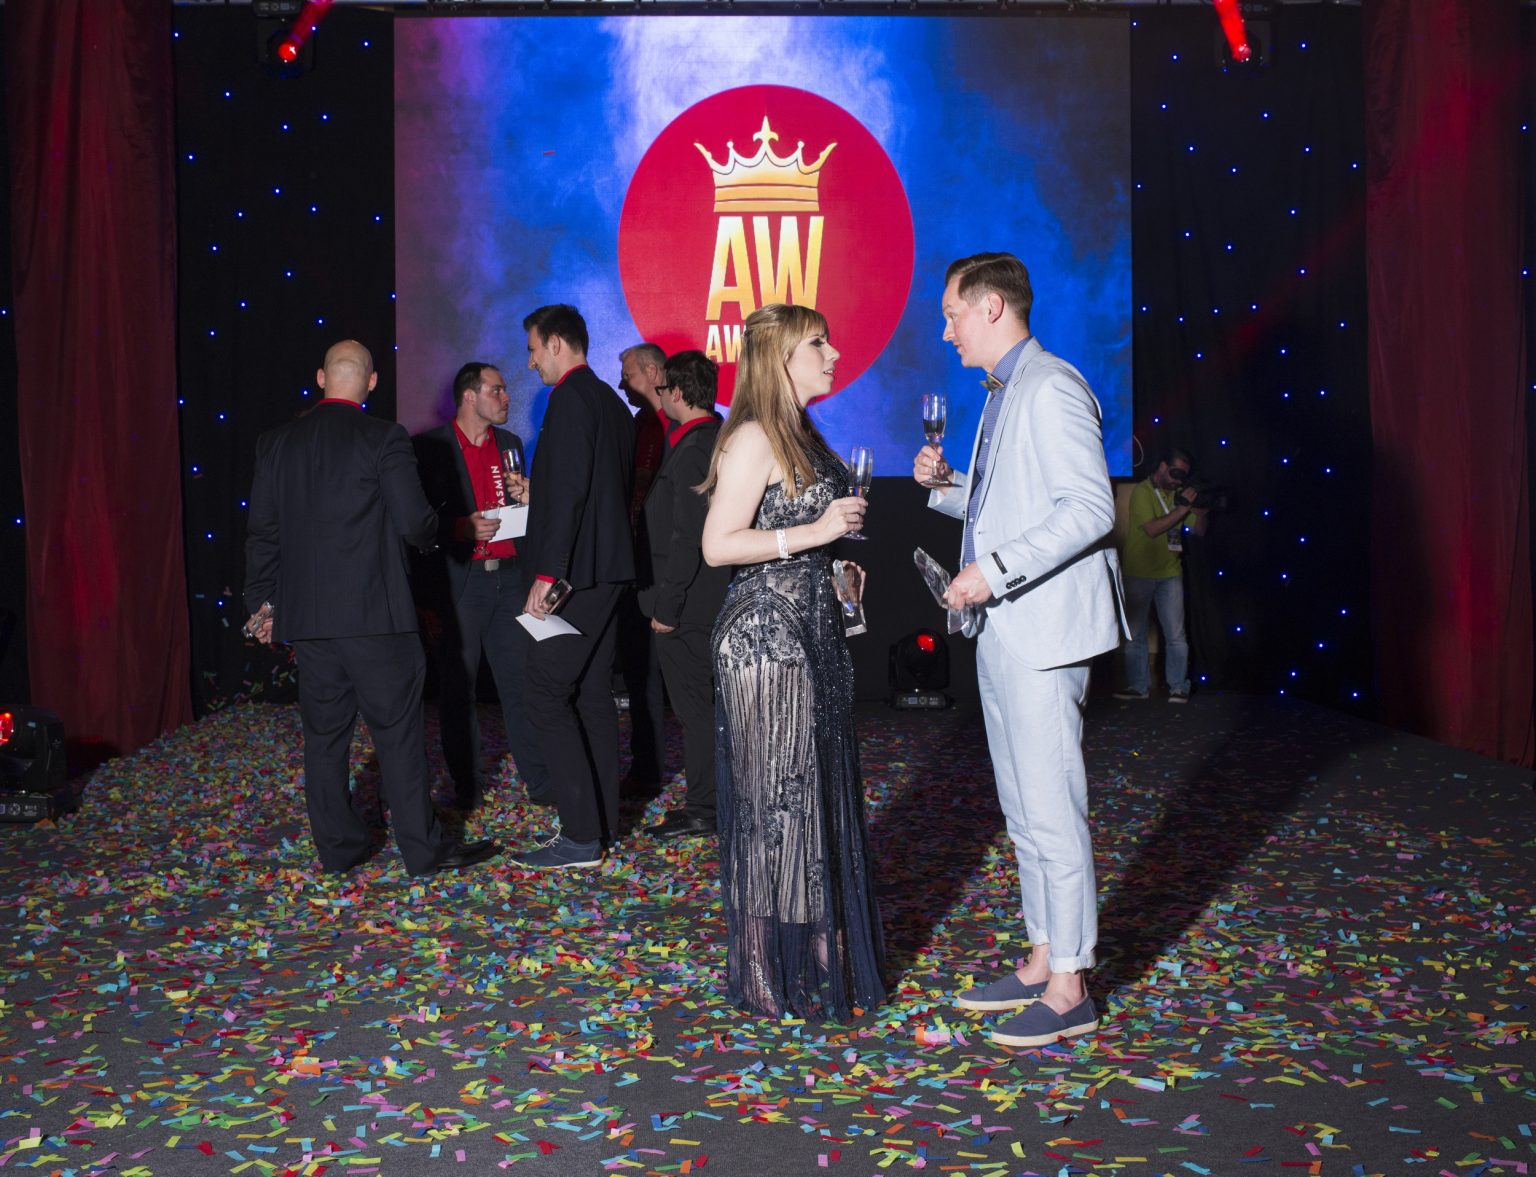 A moment of the prizegiving night of the AW Awards during the Aw Summit, globally the largest event for the erotic chat industry's players.  Mamaia, Constanța, Romania, 2016